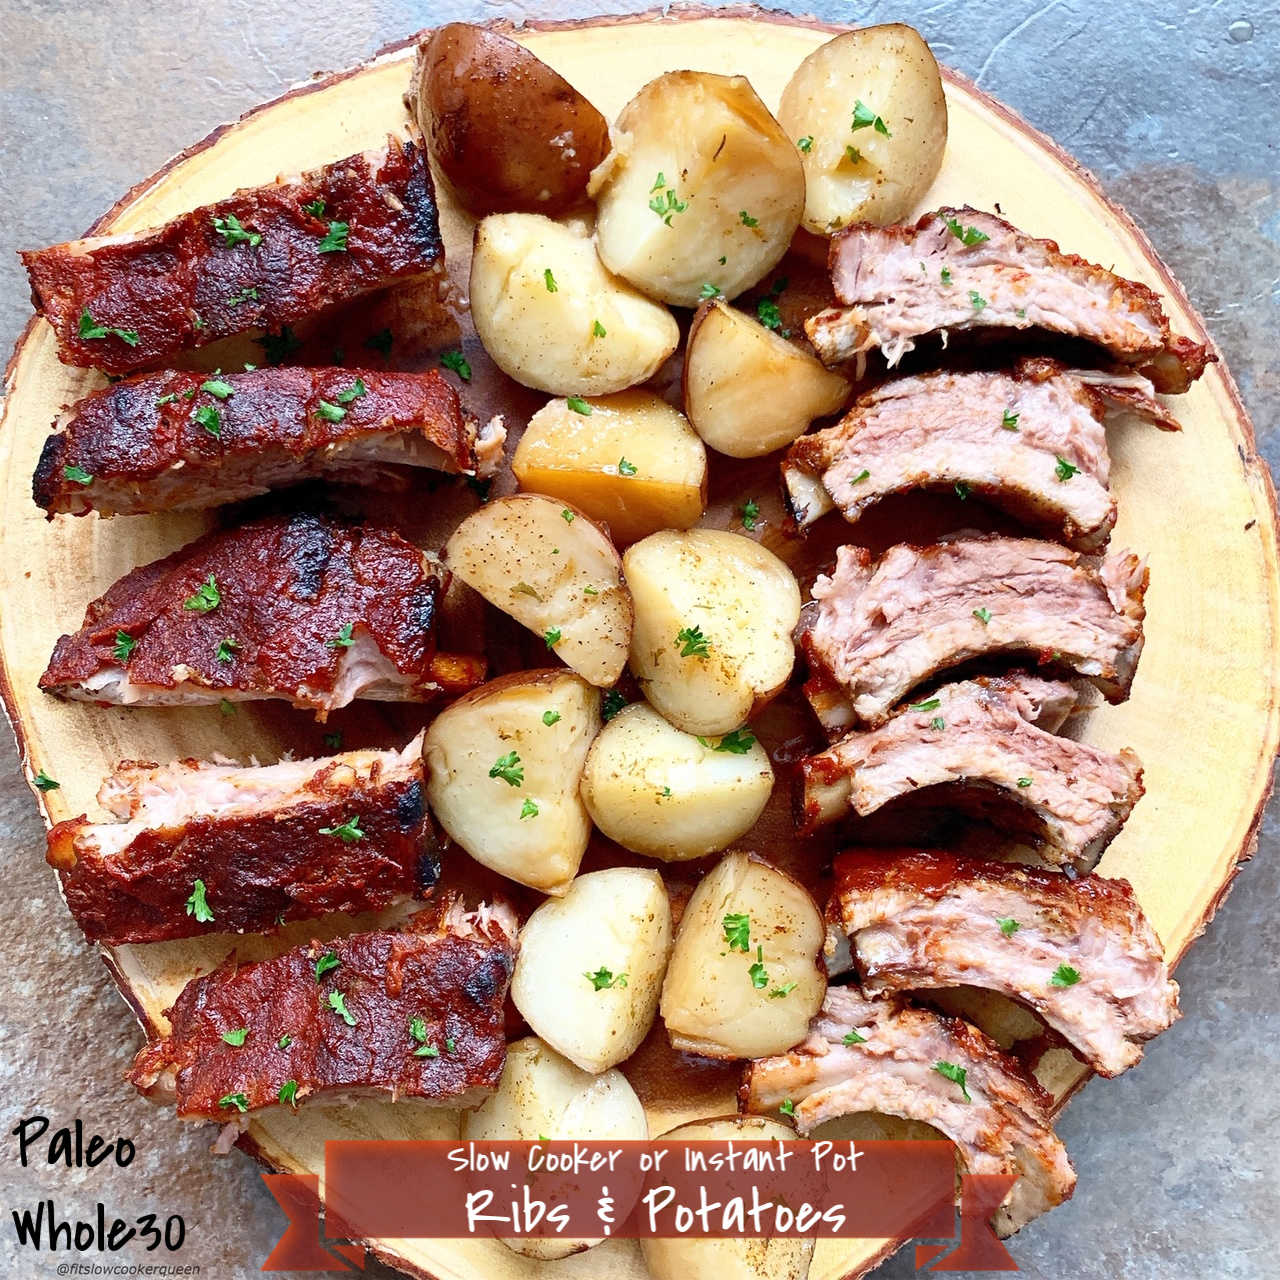 Slow Cooker/Instant Pot Ribs & Potatoes (Paleo/Whole30) - Fit Slow Cooker  Queen